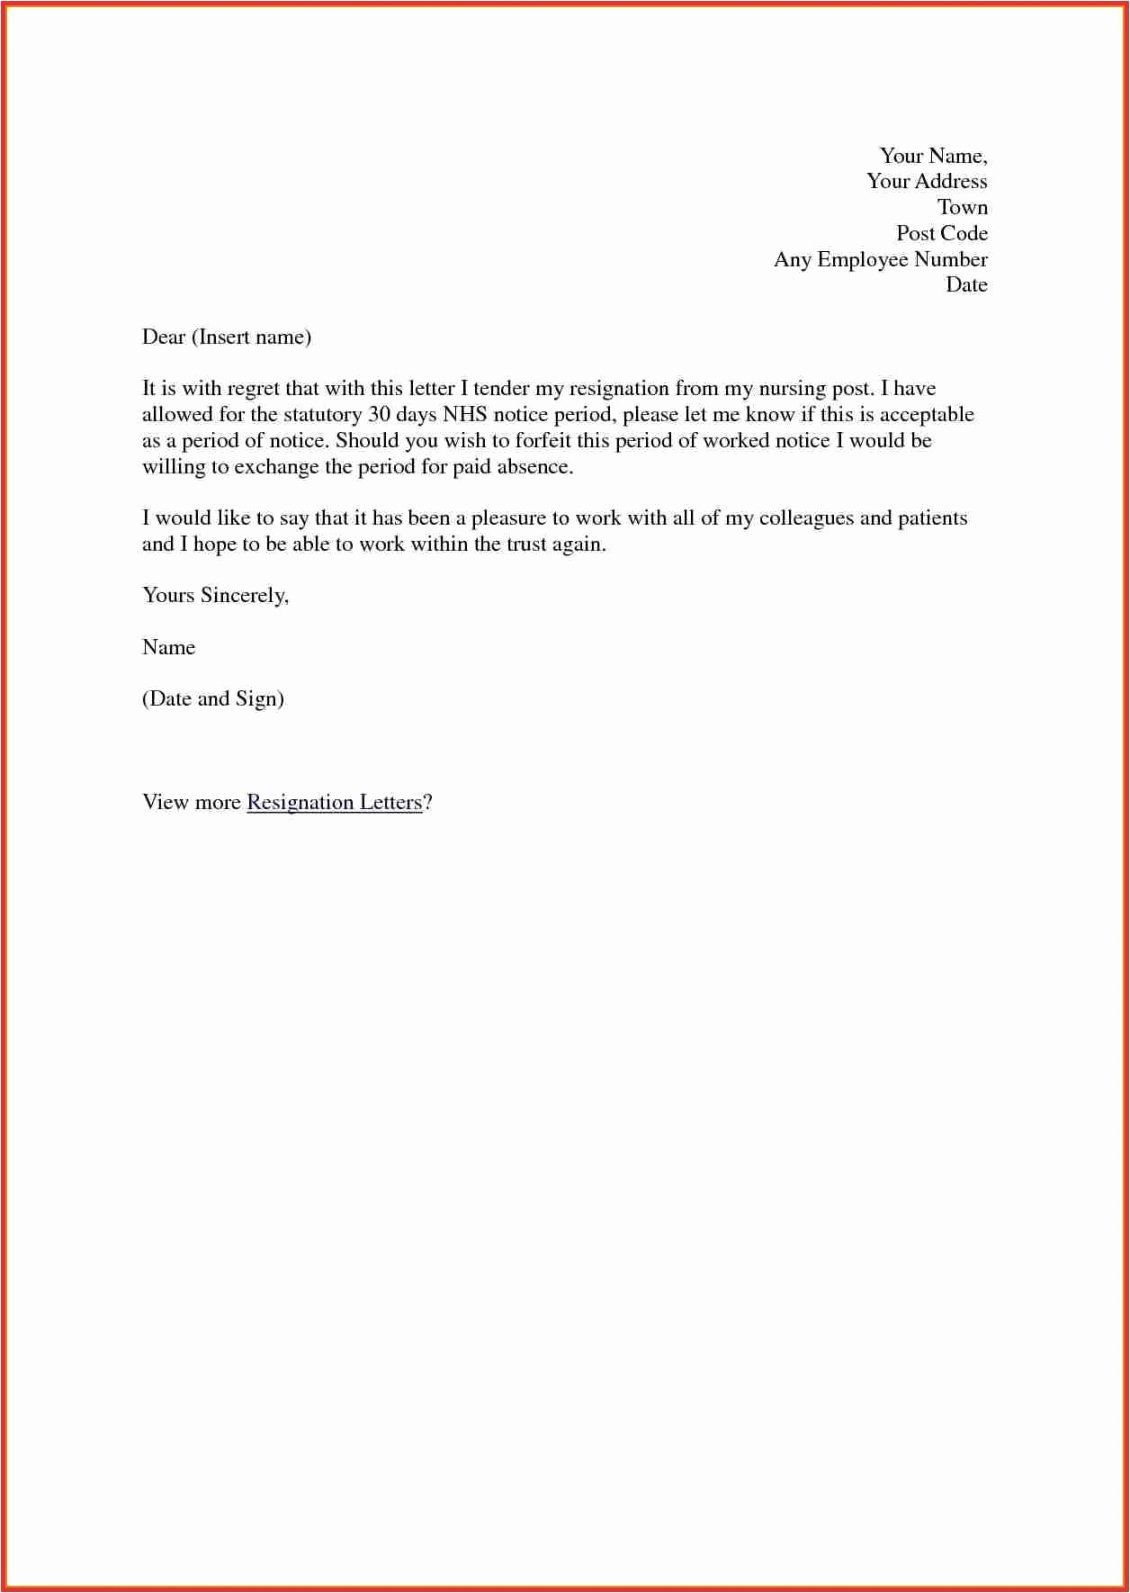 Letters Of Resignation Nursing Luxury Nursing Resignation Letter Template